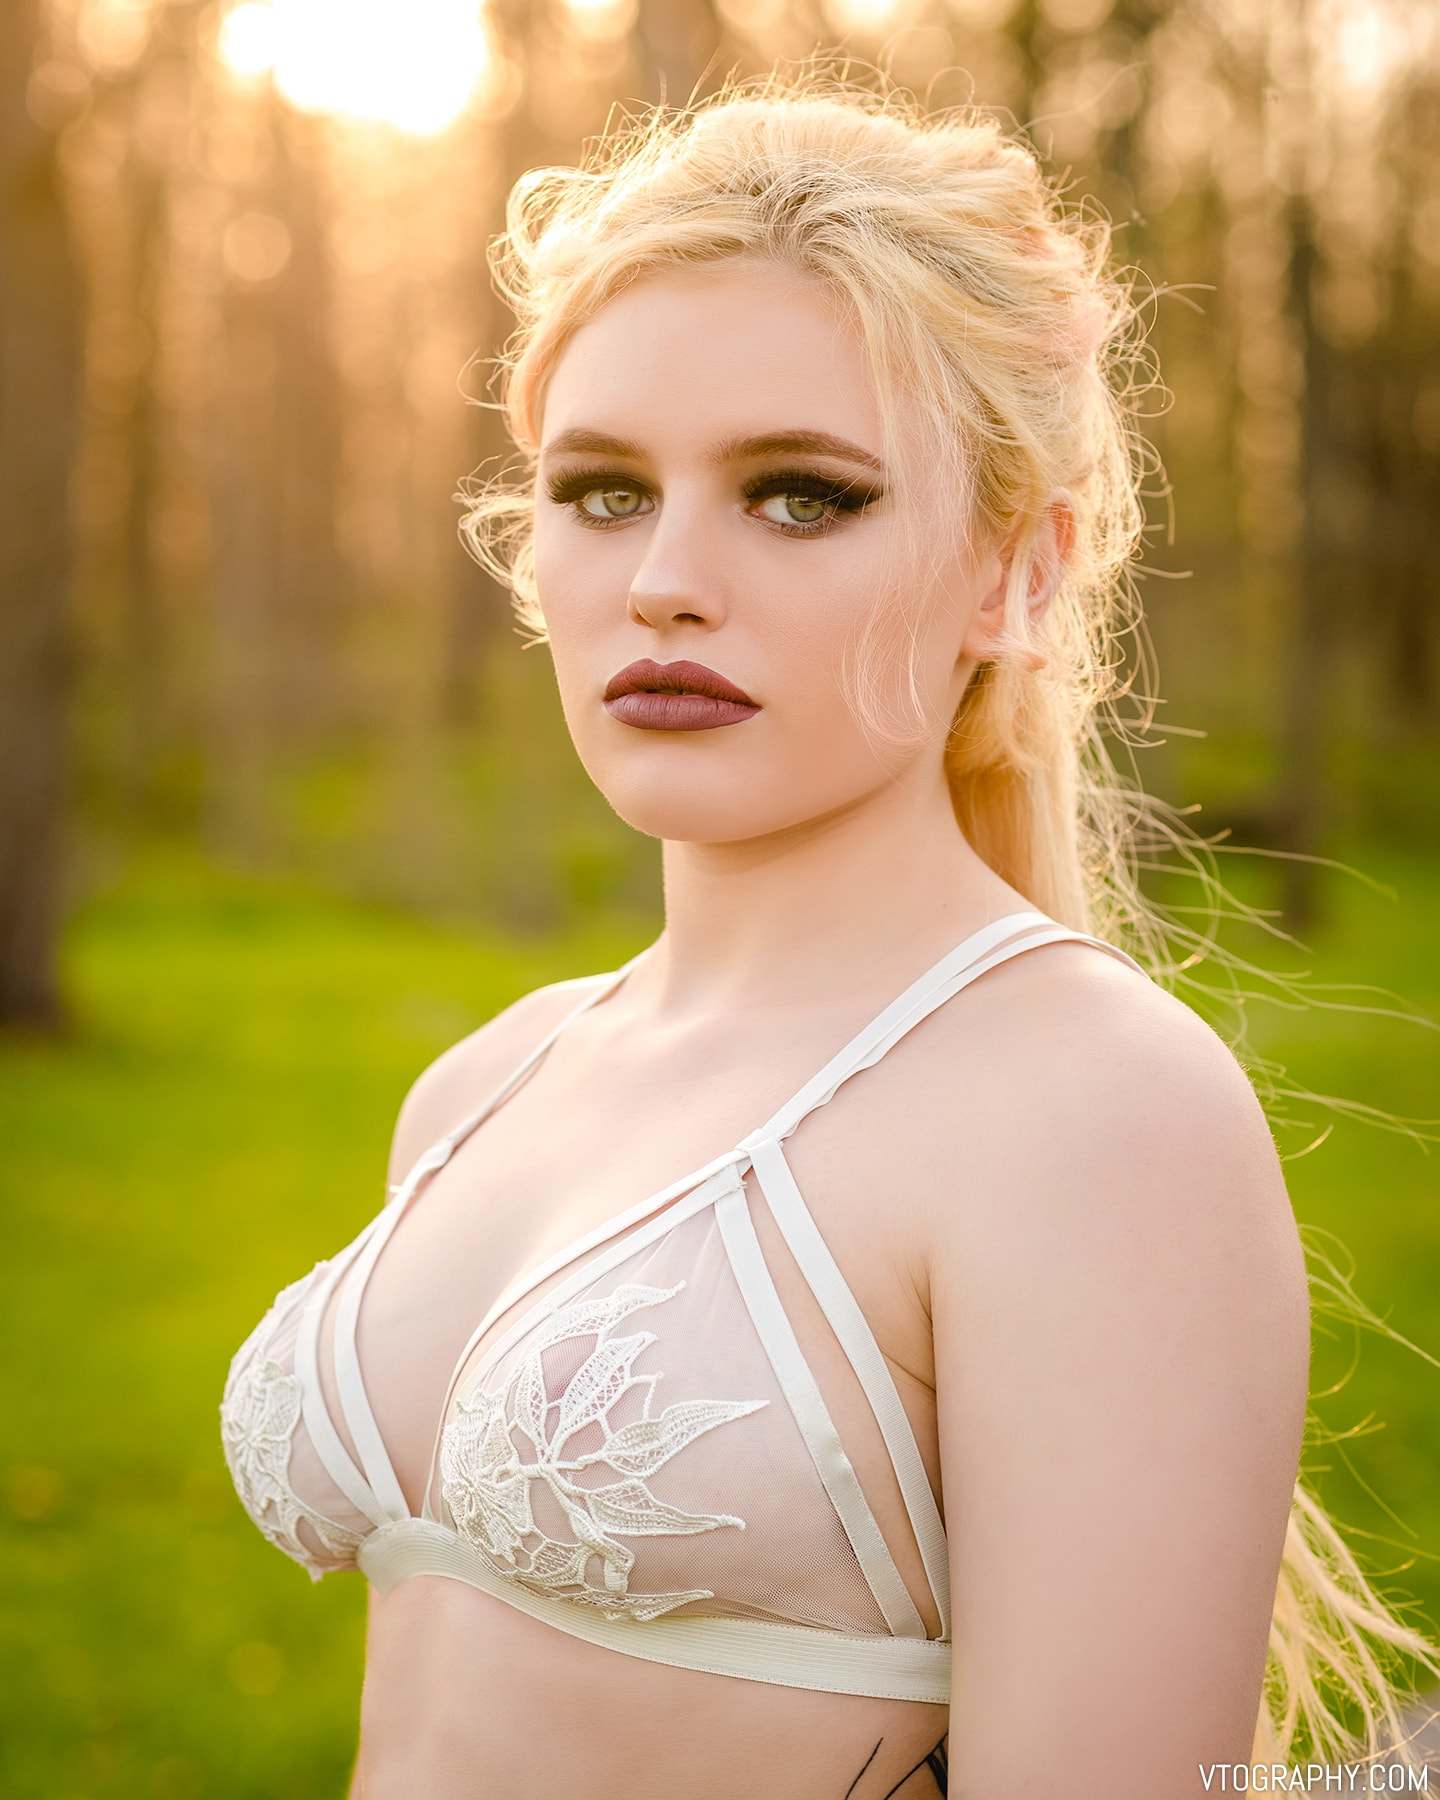 Outdoor portraits with model Willow C wearing Sirens bralette